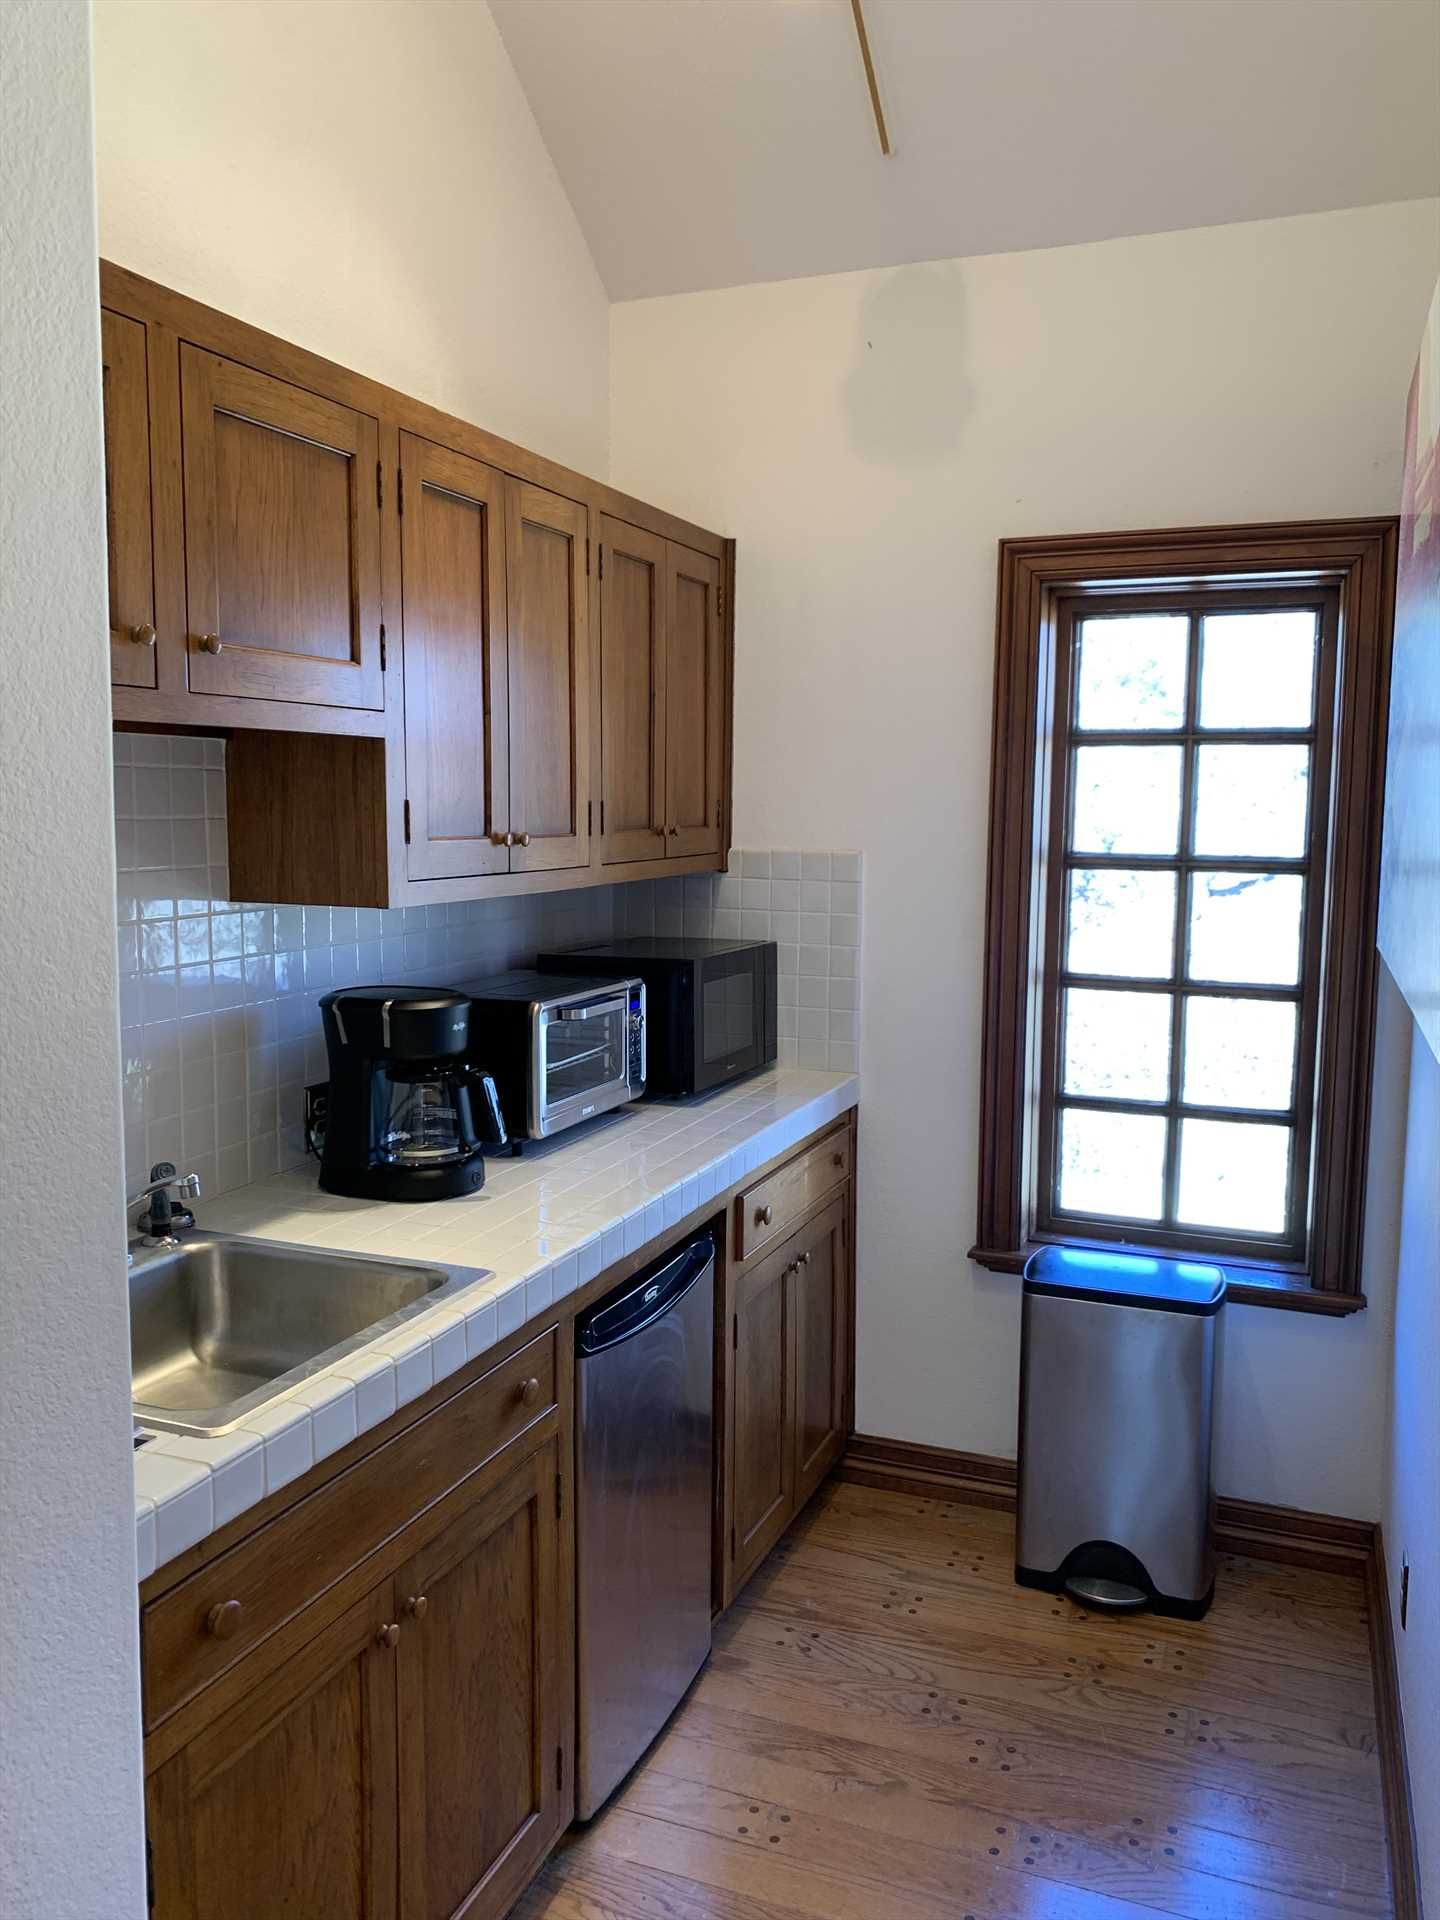 Your kitchen space includes a fridge, microwave, toaster and coffee maker-and numerous cuisine options in Hill Country towns like Kerrville are close by, too!